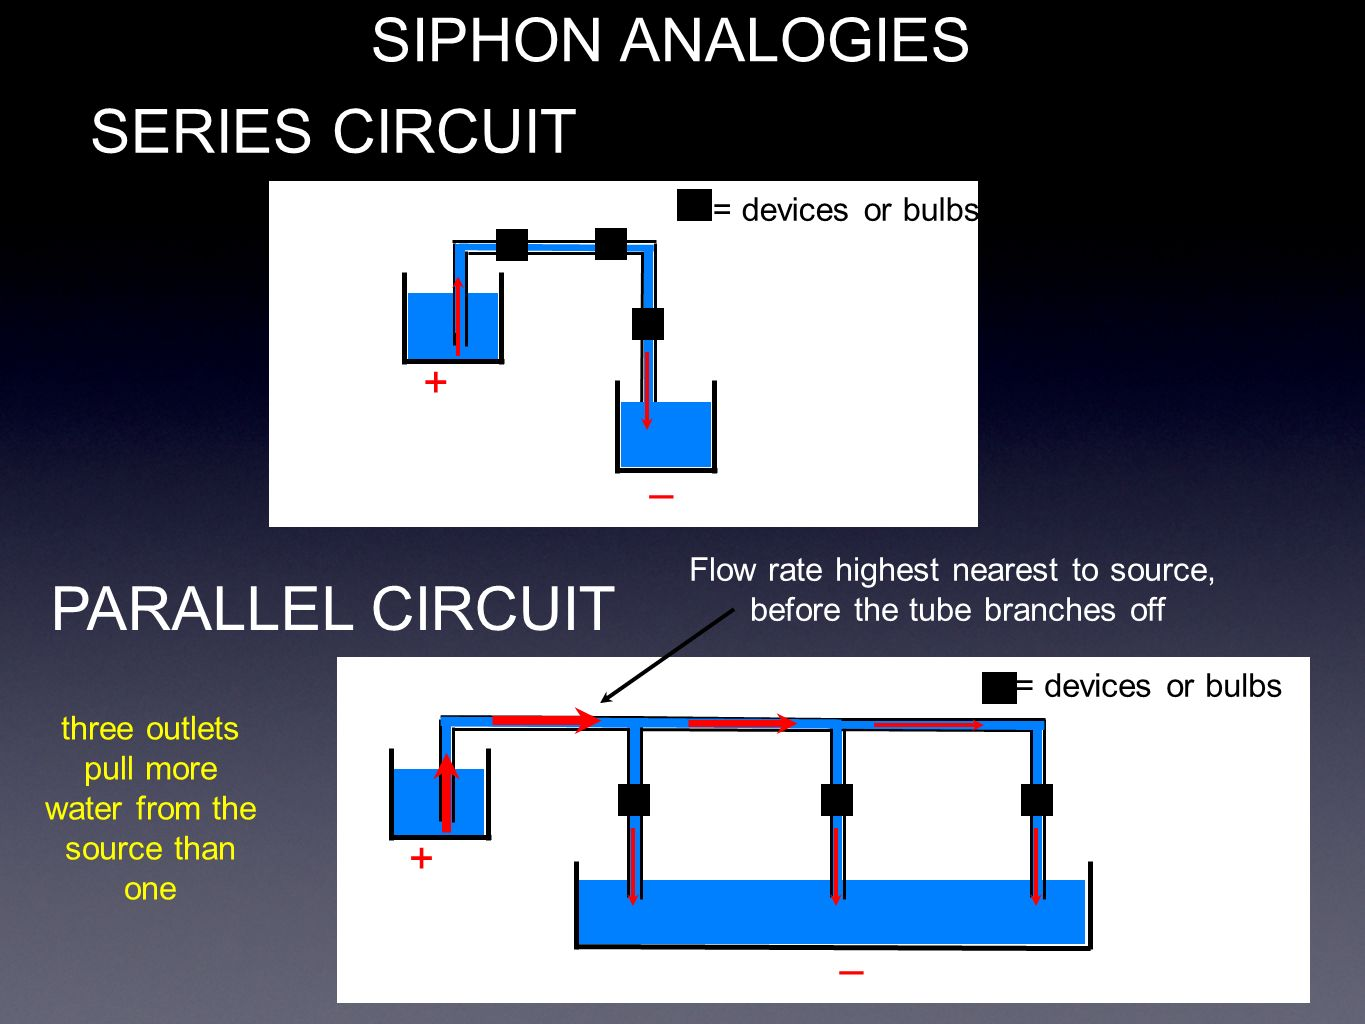 Discuss The Differences Between Series And Parallel Circuits Circuit Bulbs Are In 8 Siphon Analogies Devices Or